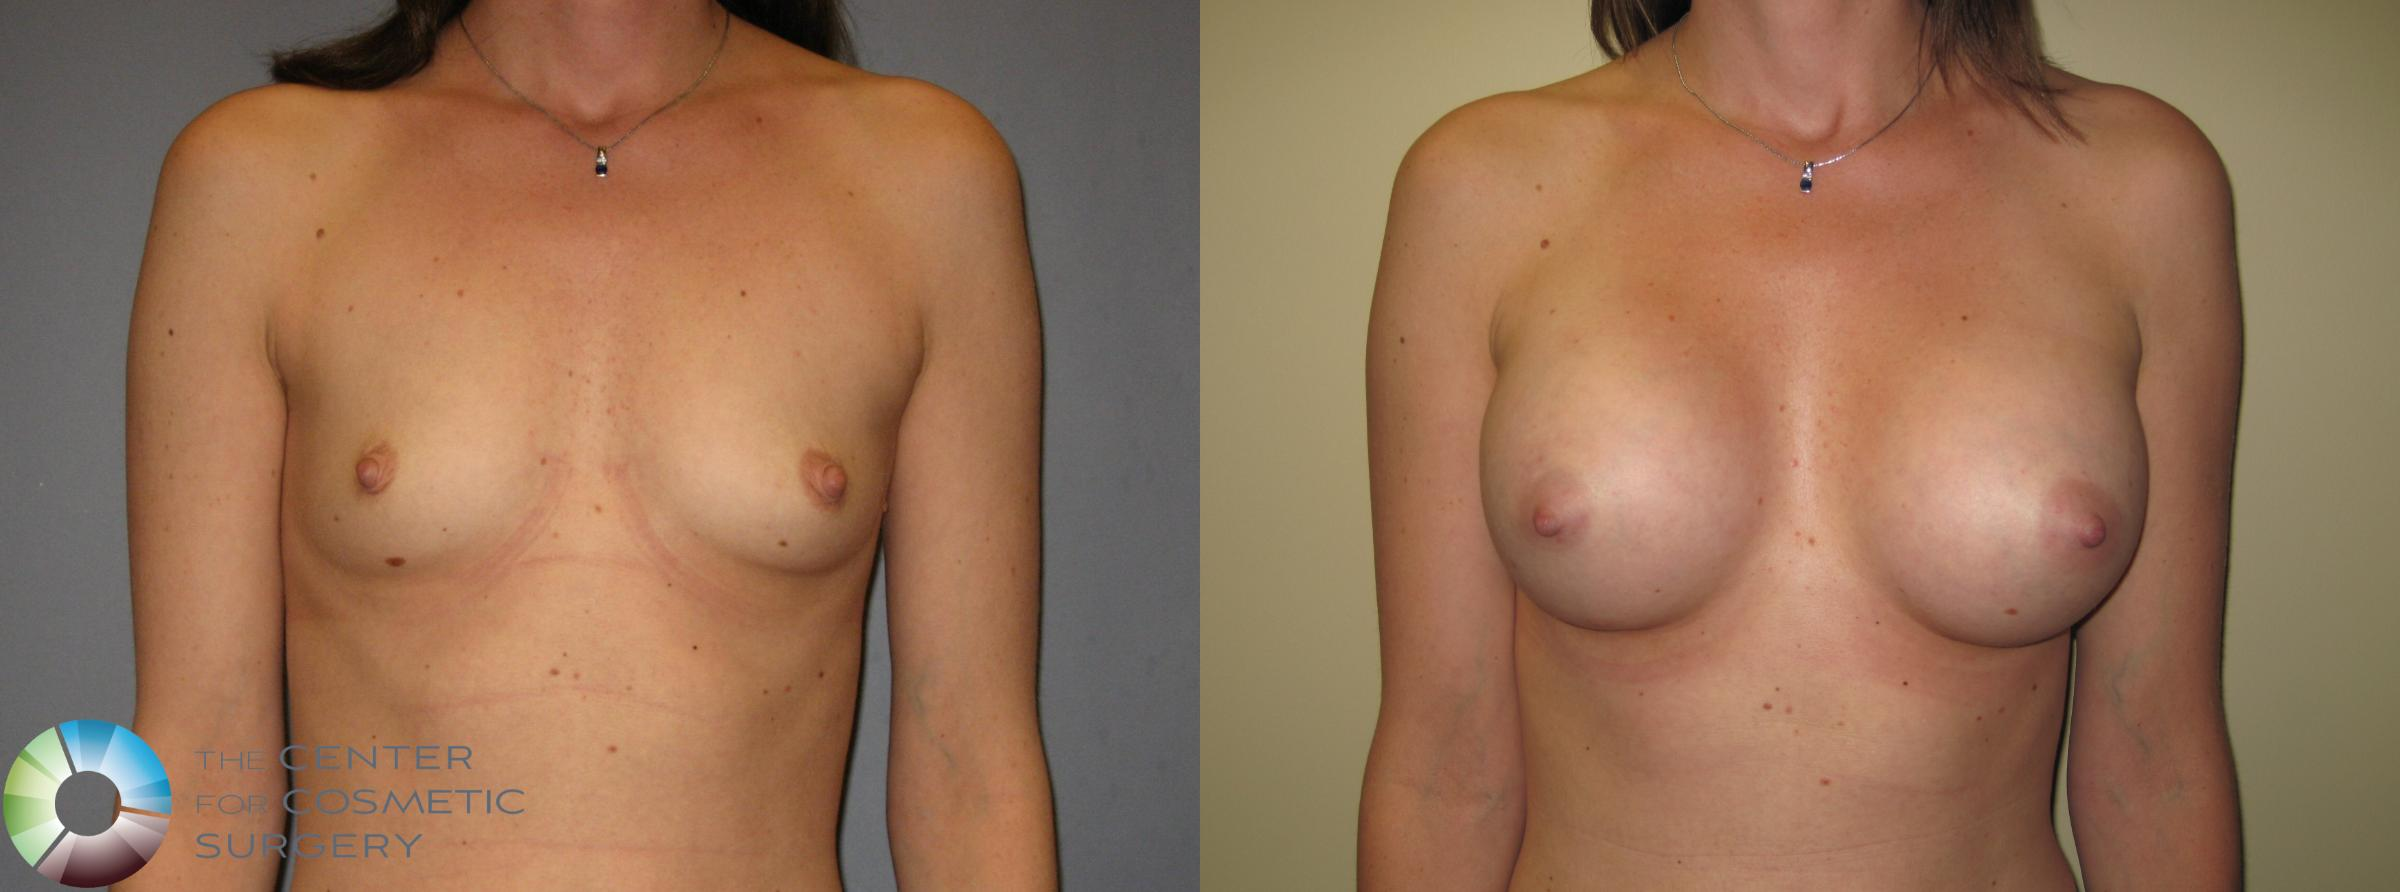 Breast Augmentation Case 424 Before & After View #1 | Golden, CO | The Center for Cosmetic Surgery